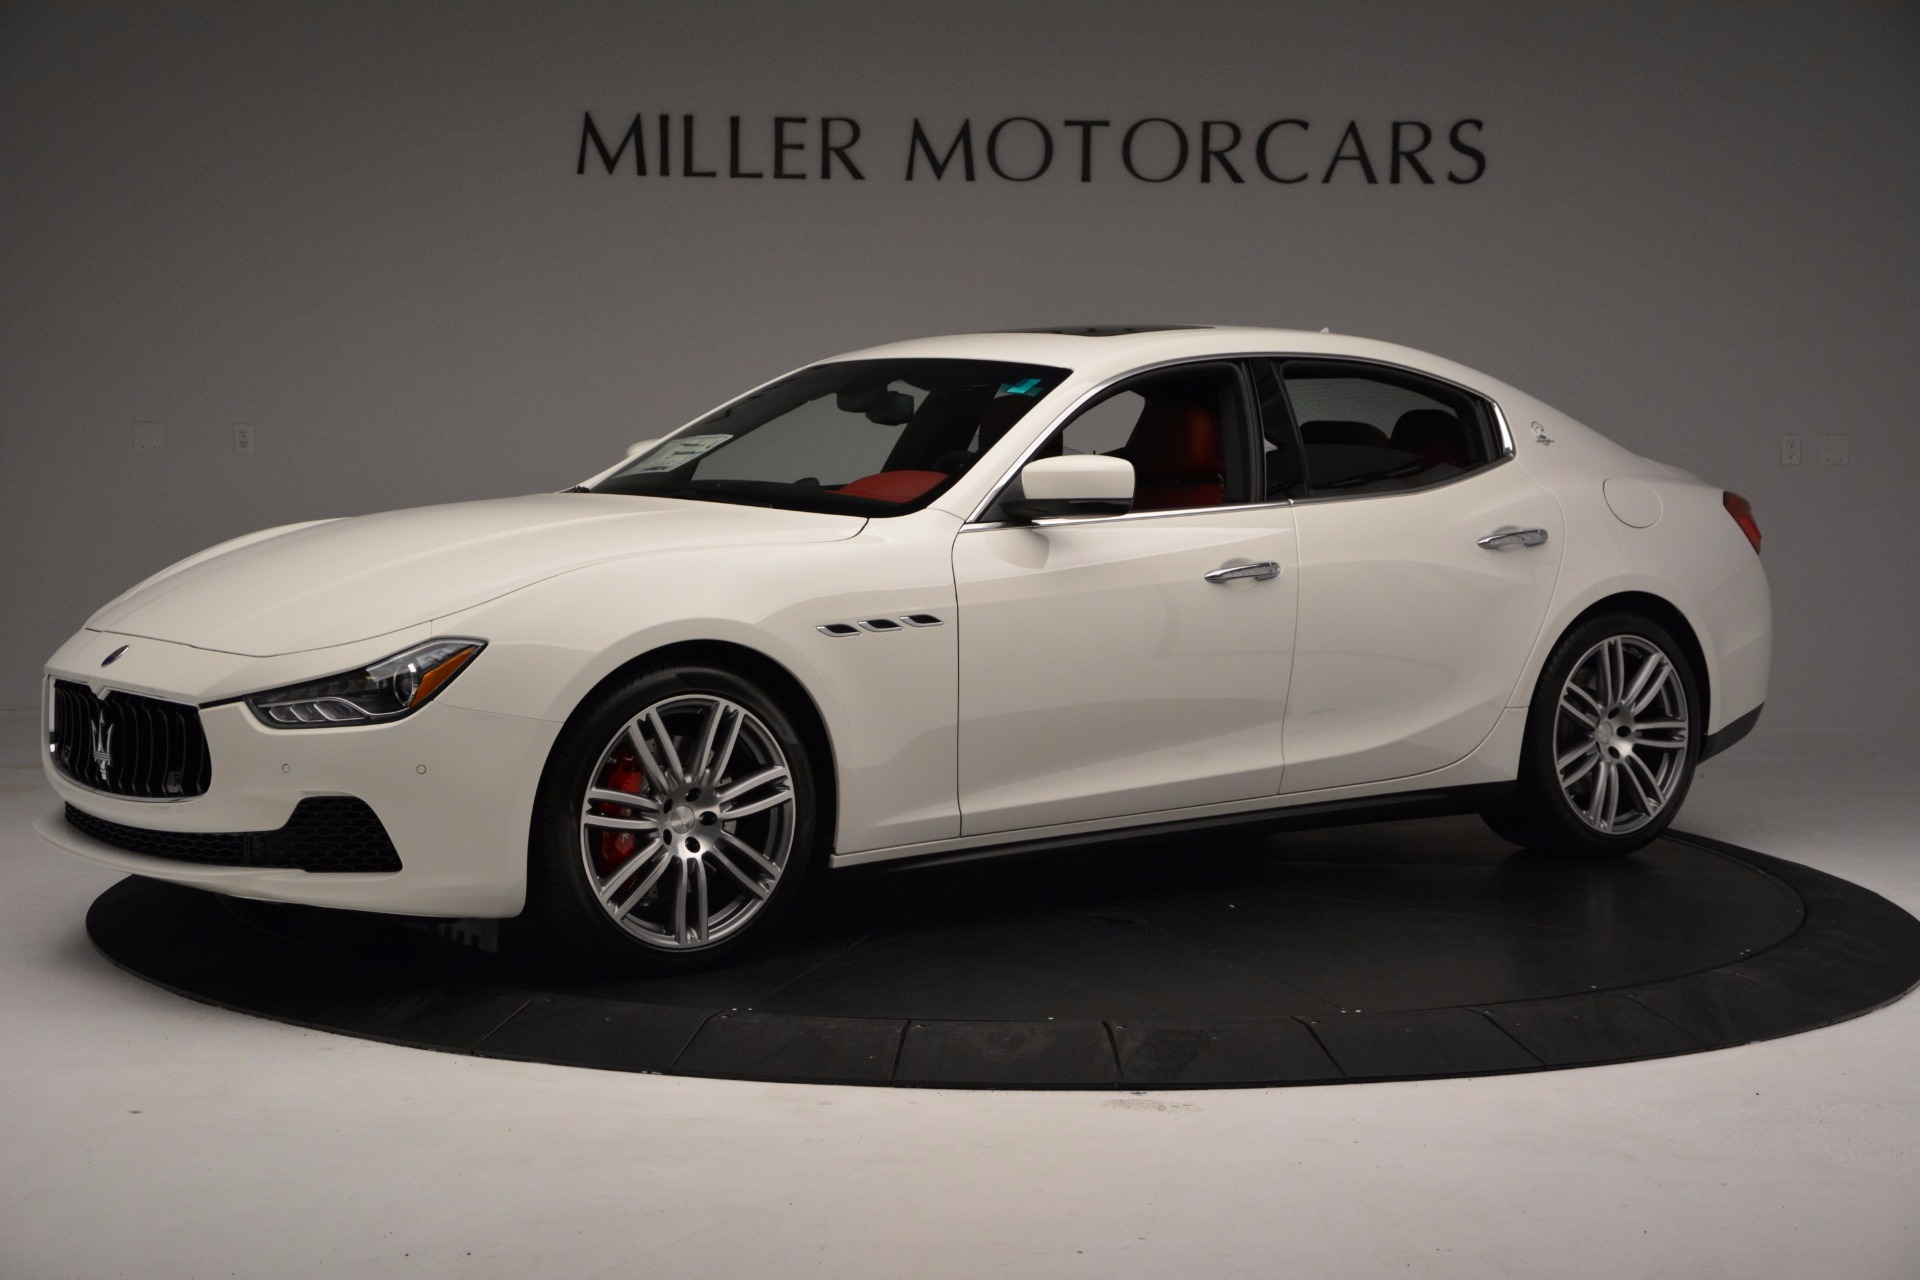 New 2017 Maserati Ghibli S Q4 For Sale In Greenwich, CT 1111_p2